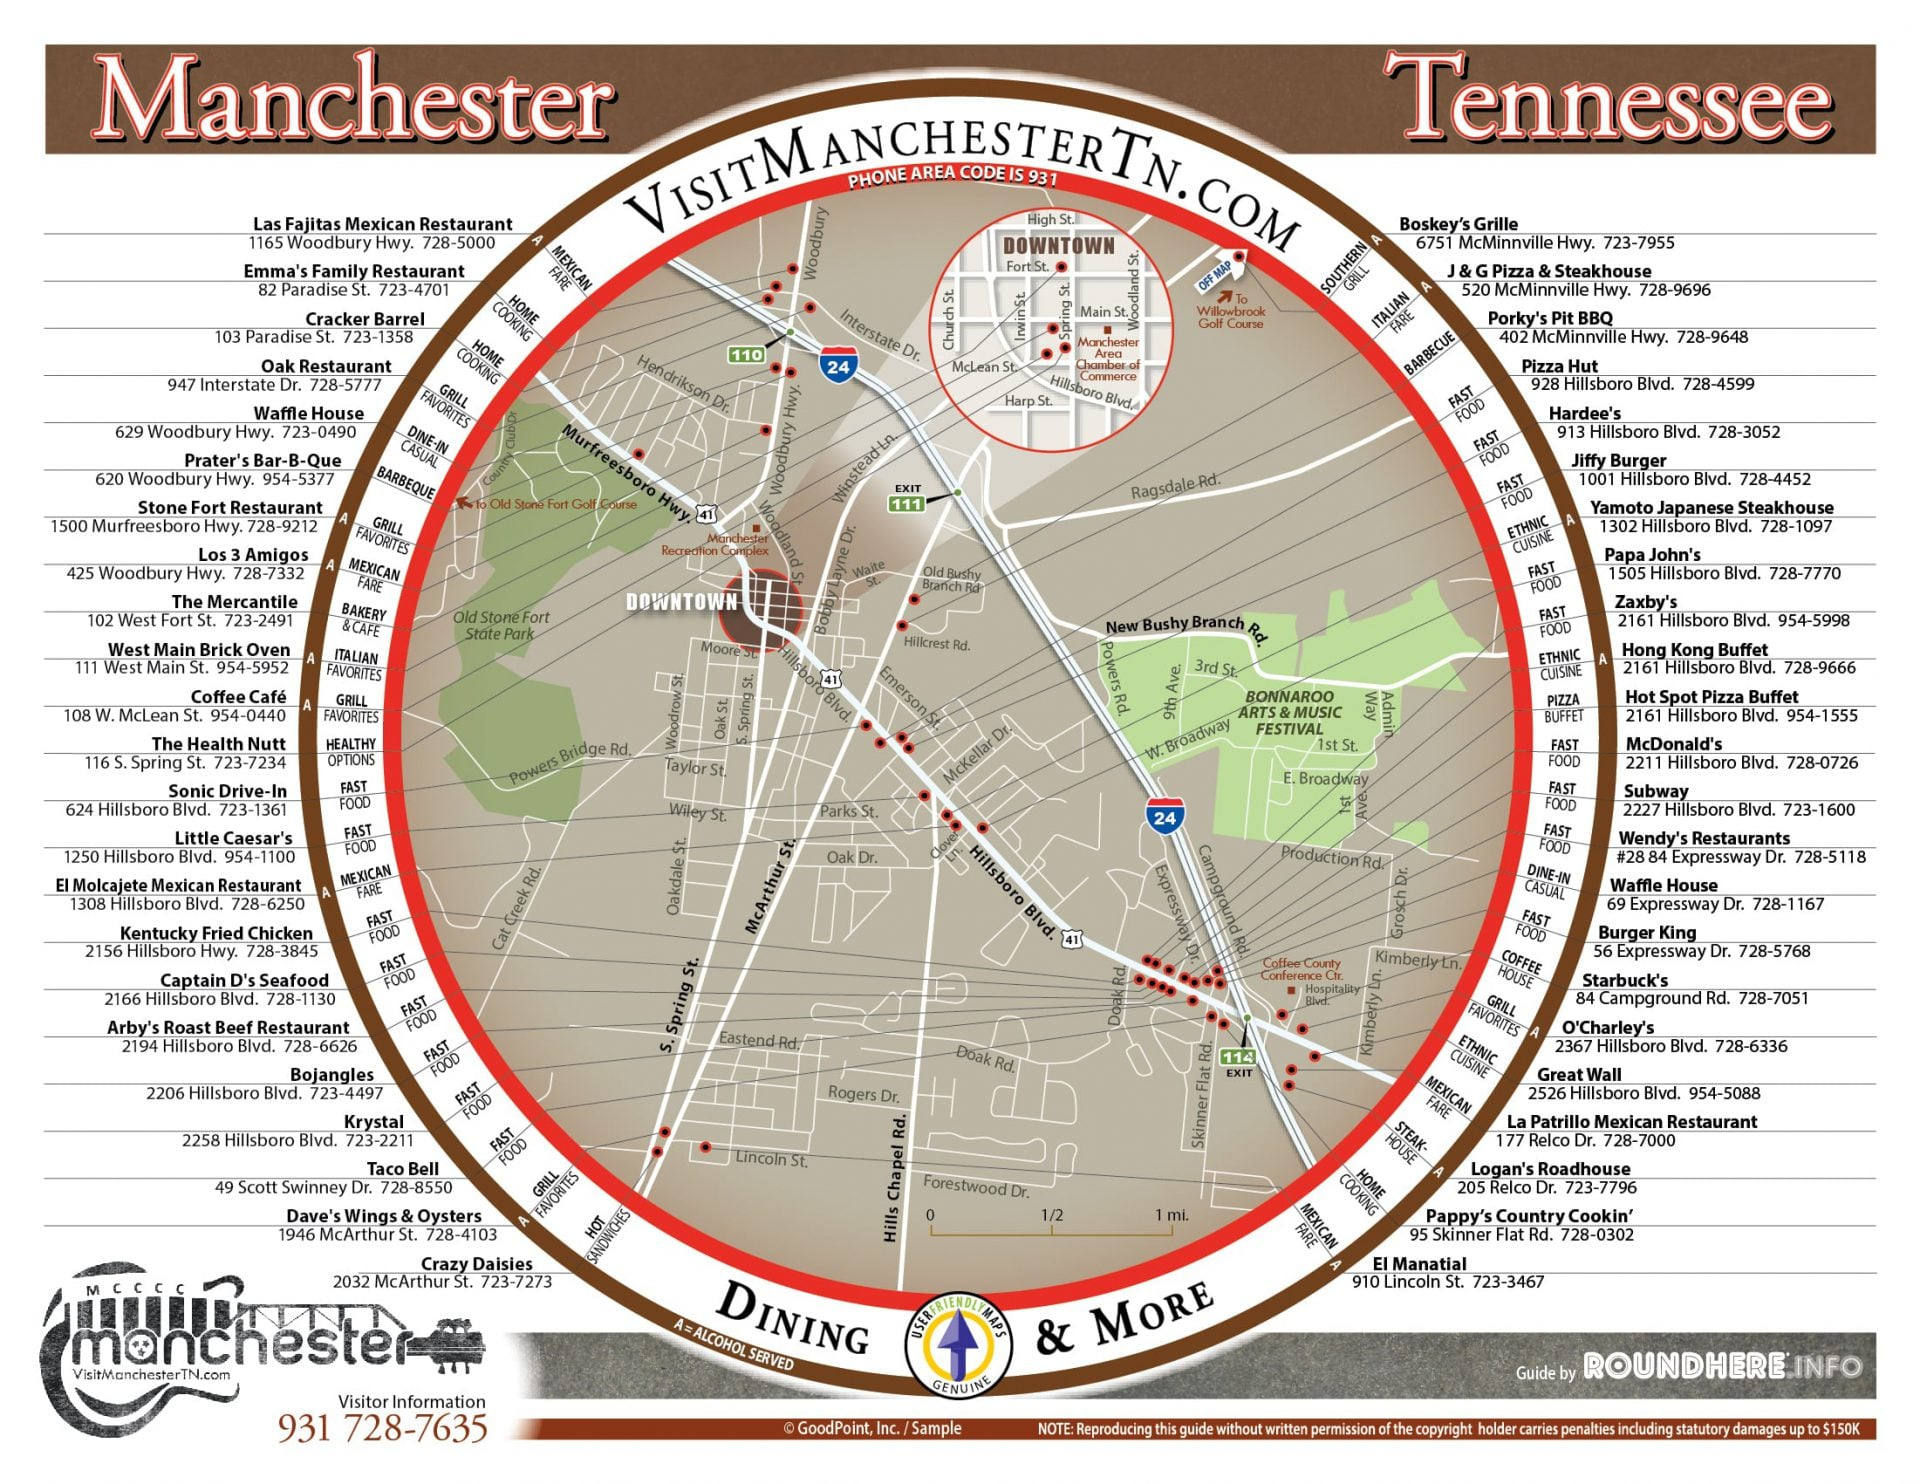 Manchester RoundHere